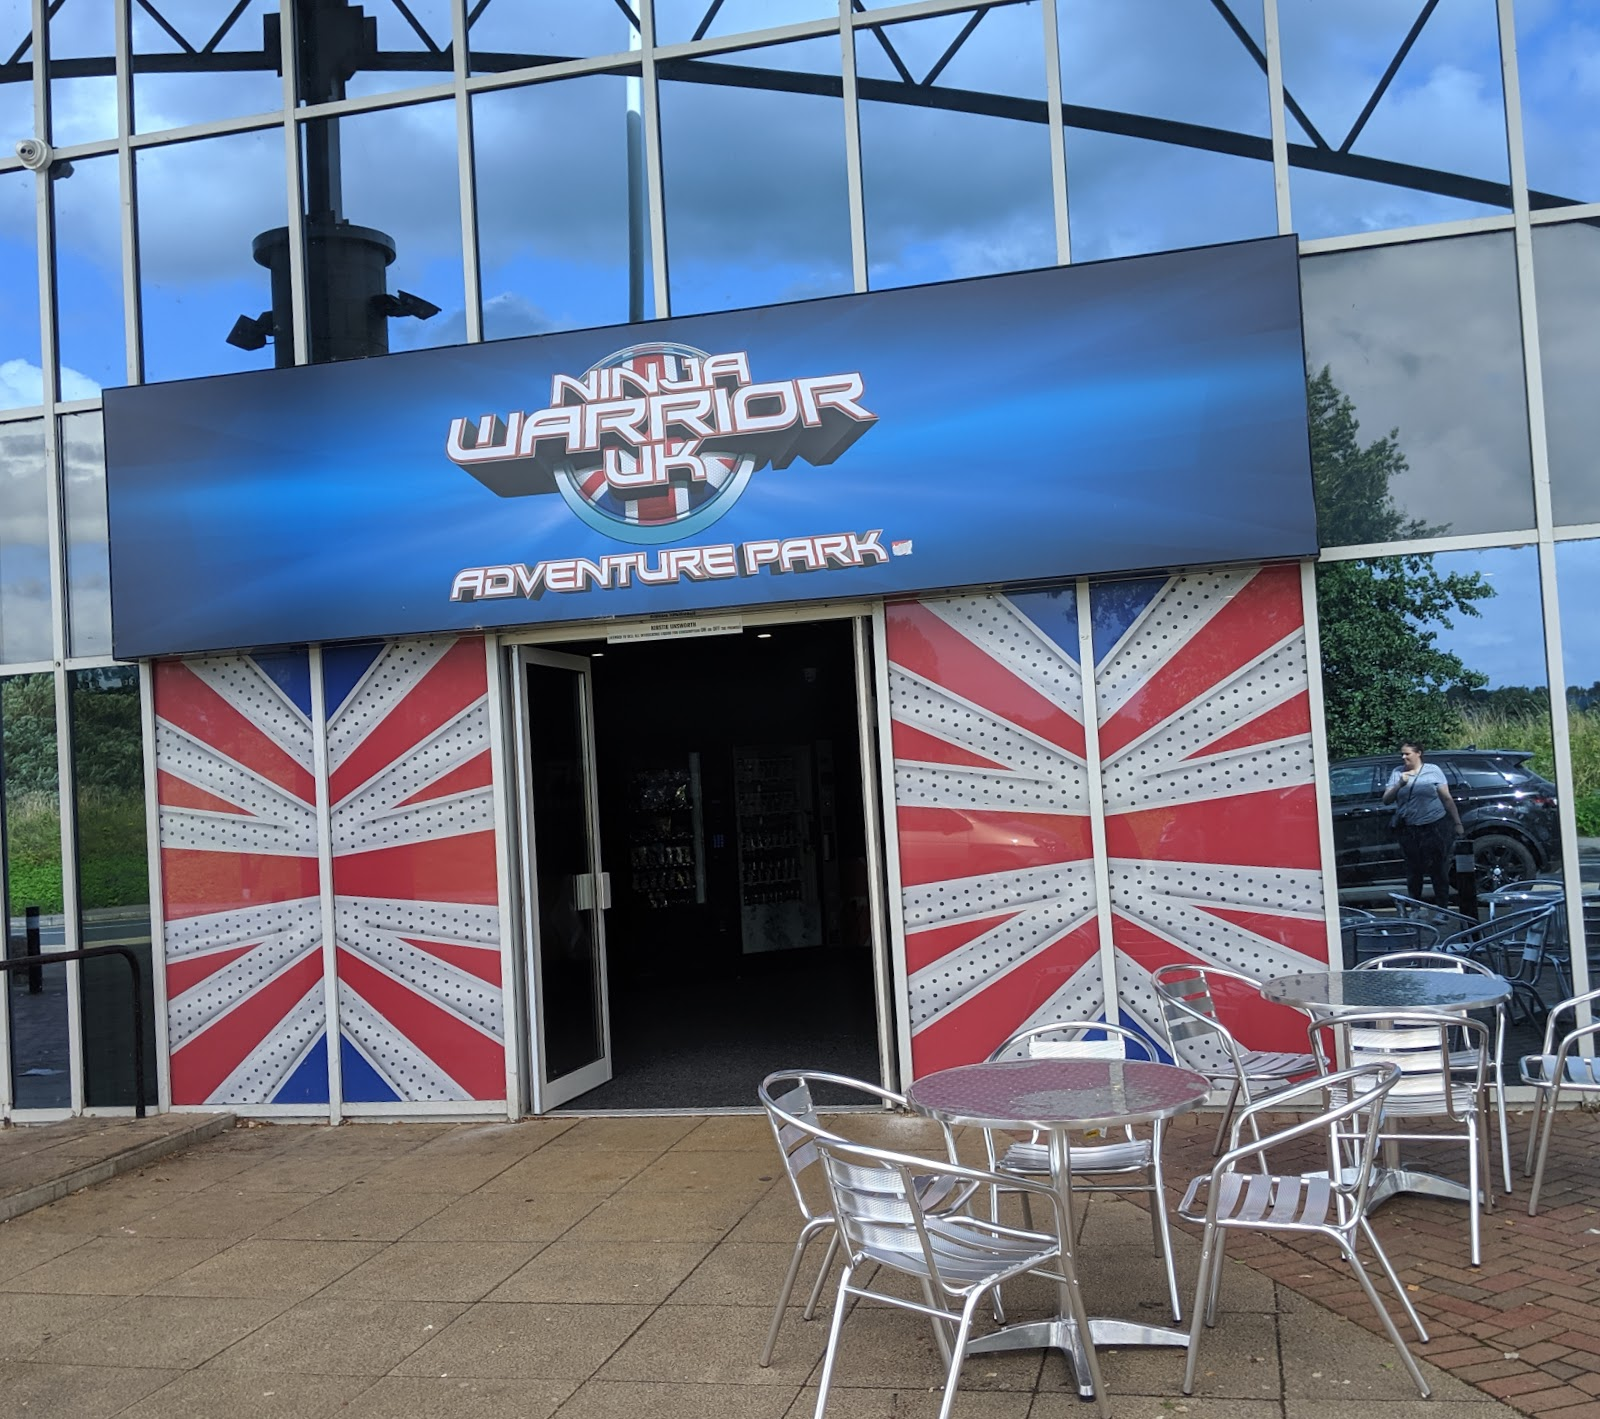 Ninja Warrior Adventure Park Wigan Review  - entrance